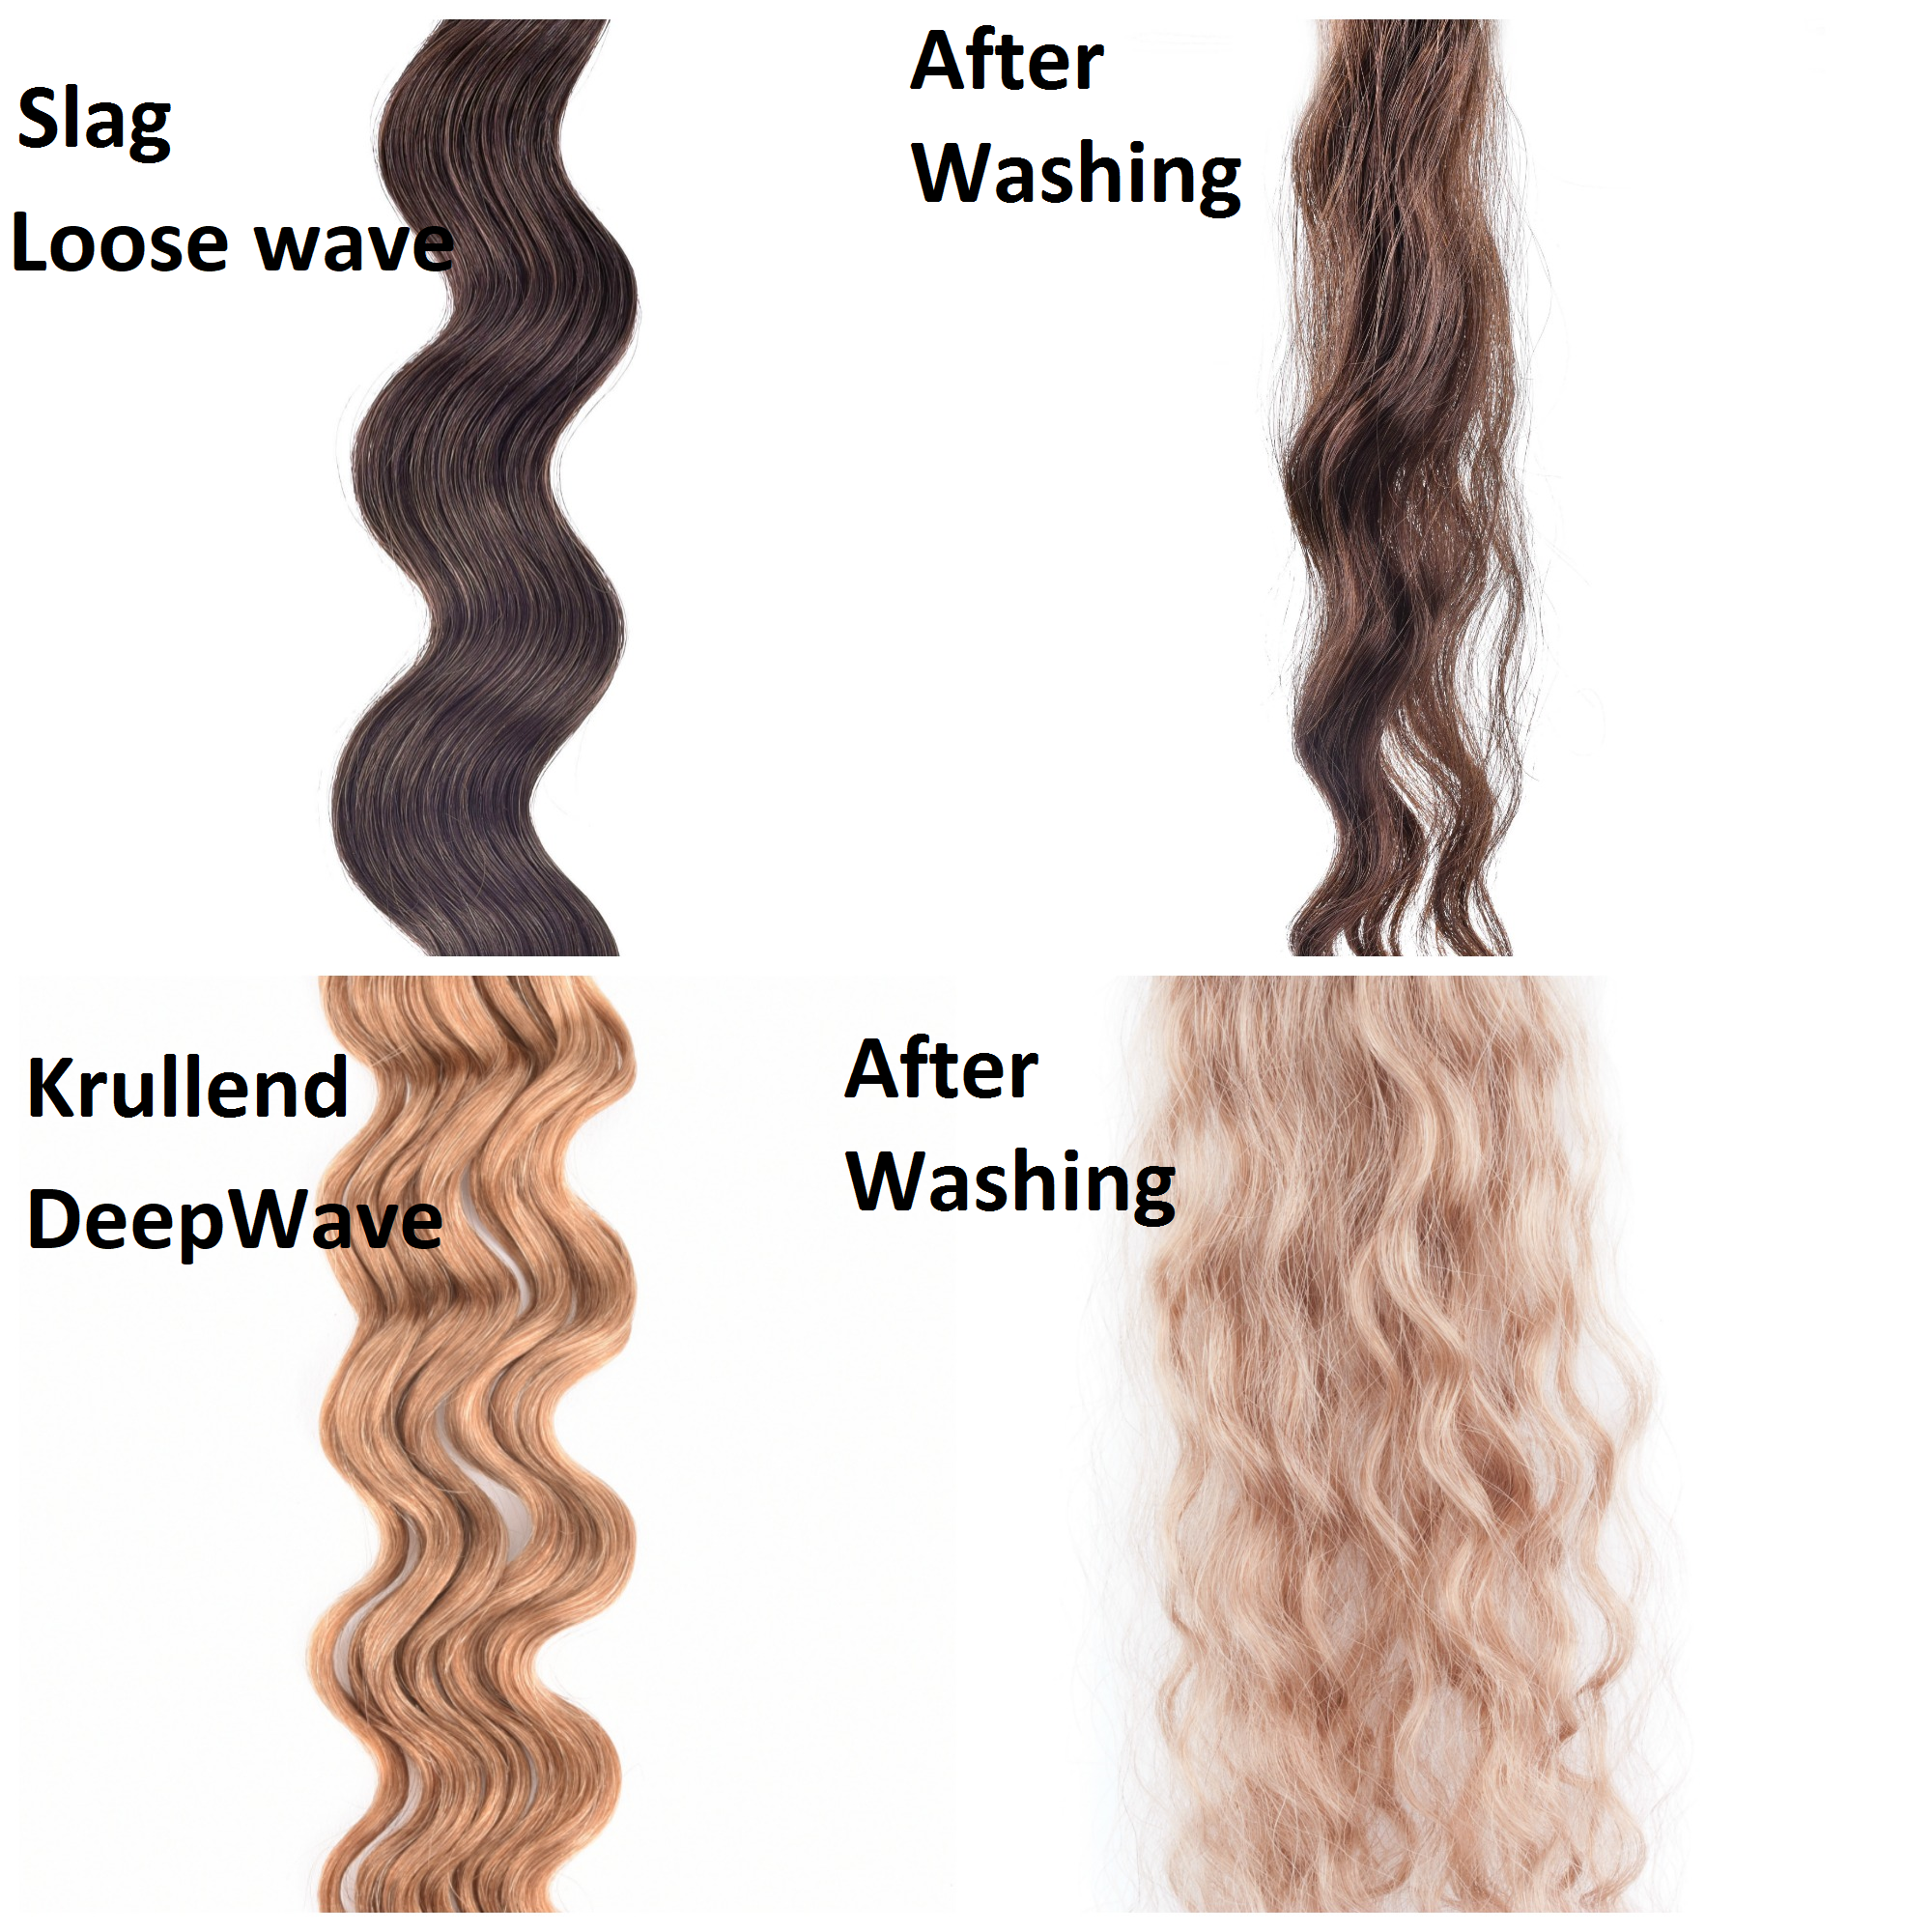 SilverFox Wax Extensions Loose Wave 55cm #24 Warm Light Blonde